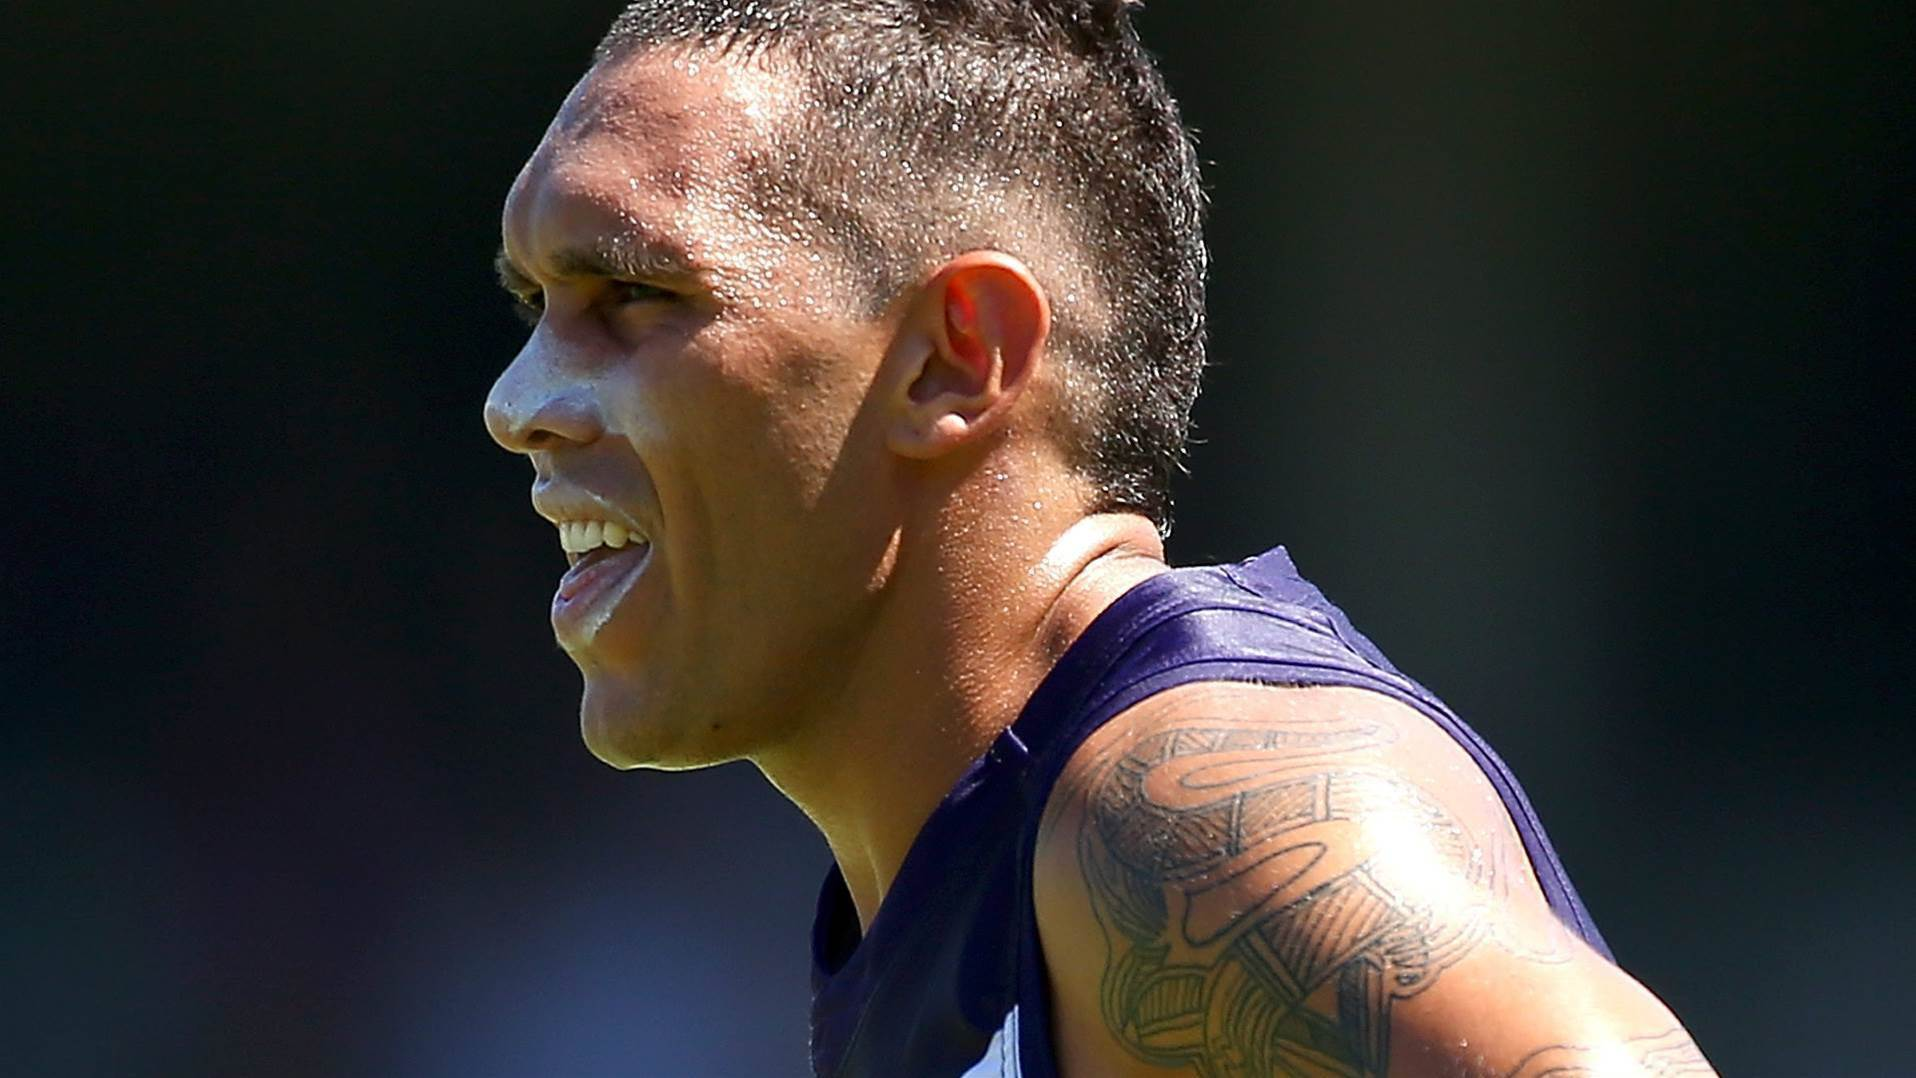 Docker fined and ordered to counselling